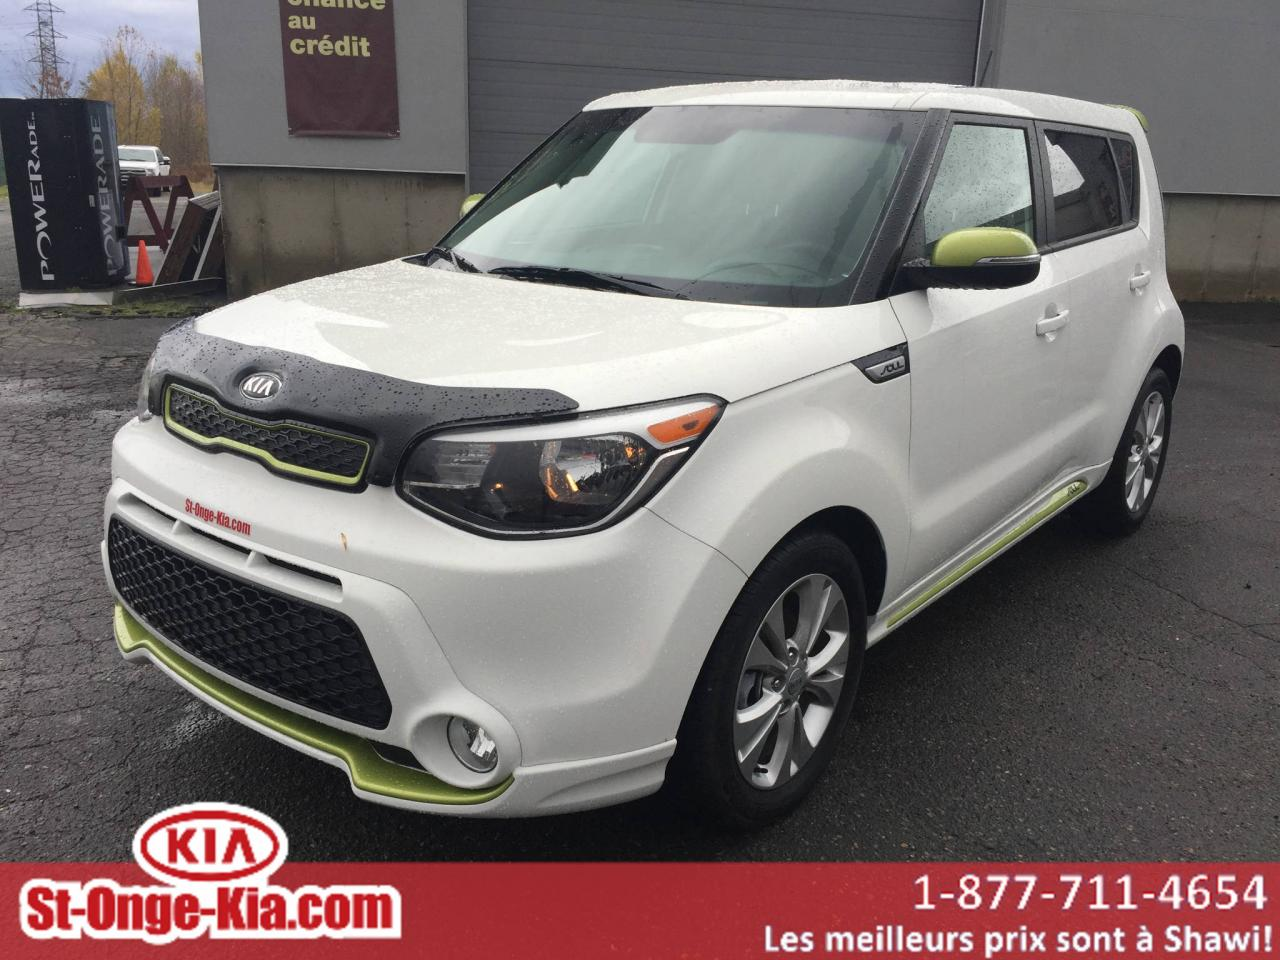 sale soul spinelli montreal lx en for inventory in used kia